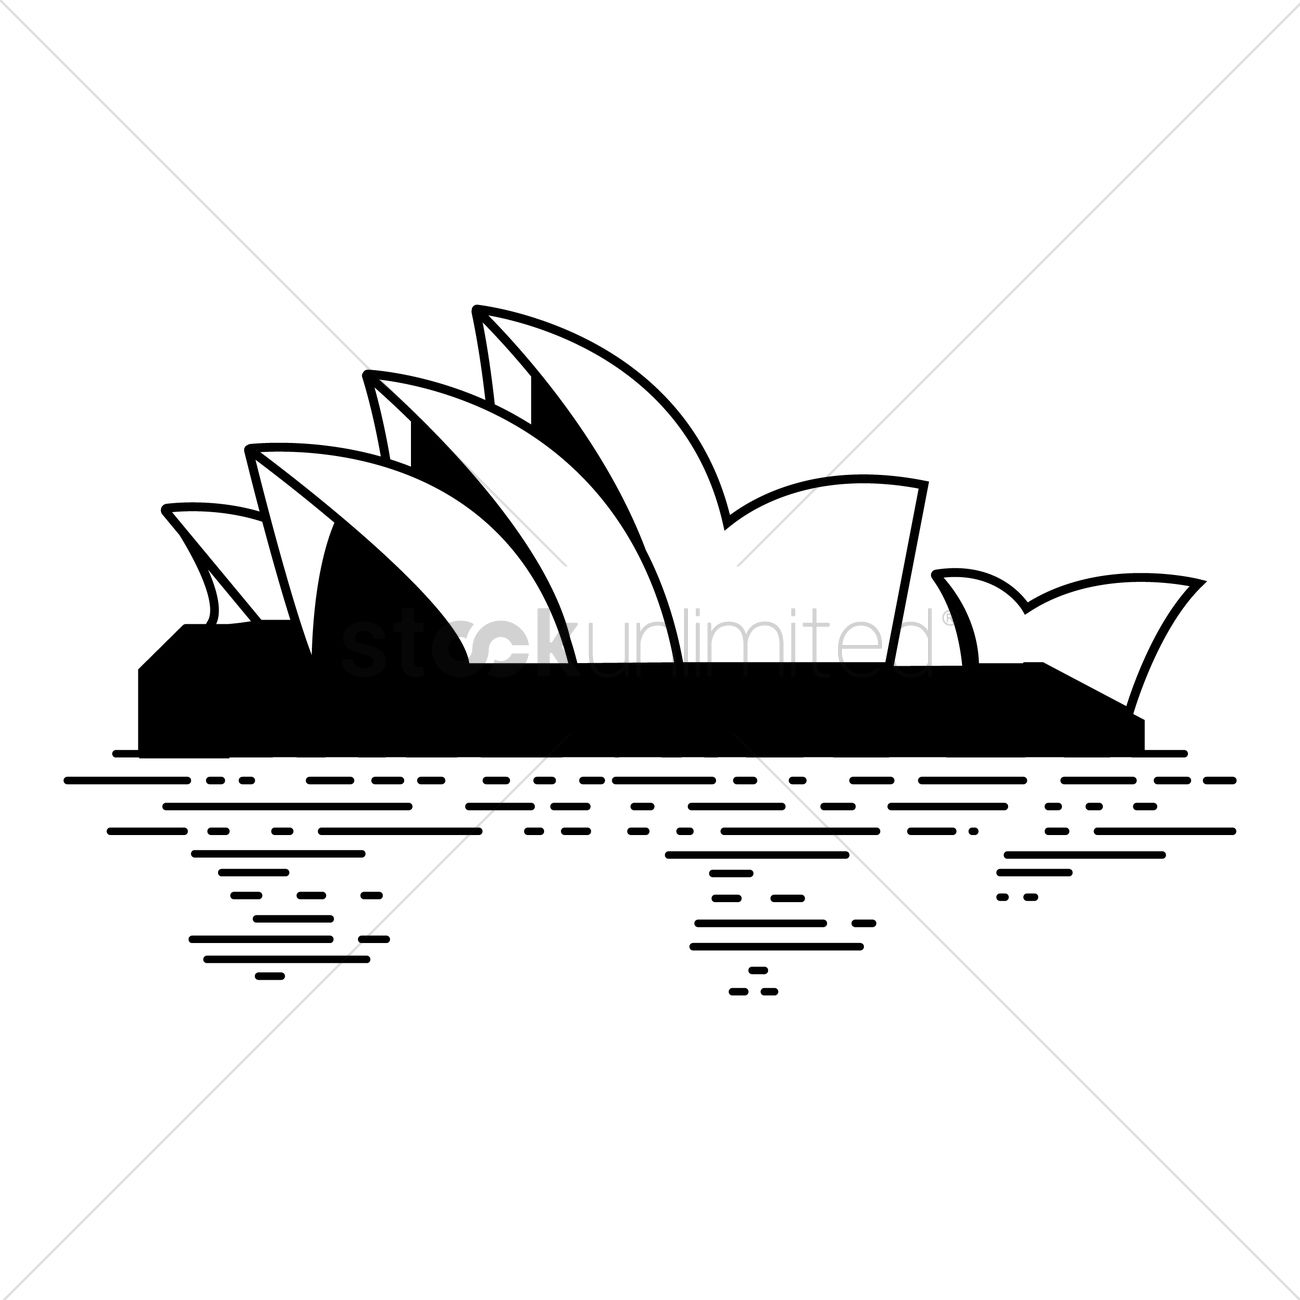 sydney opera house 1952330 - Get Vector Images Of Sydney Opera House  Pictures